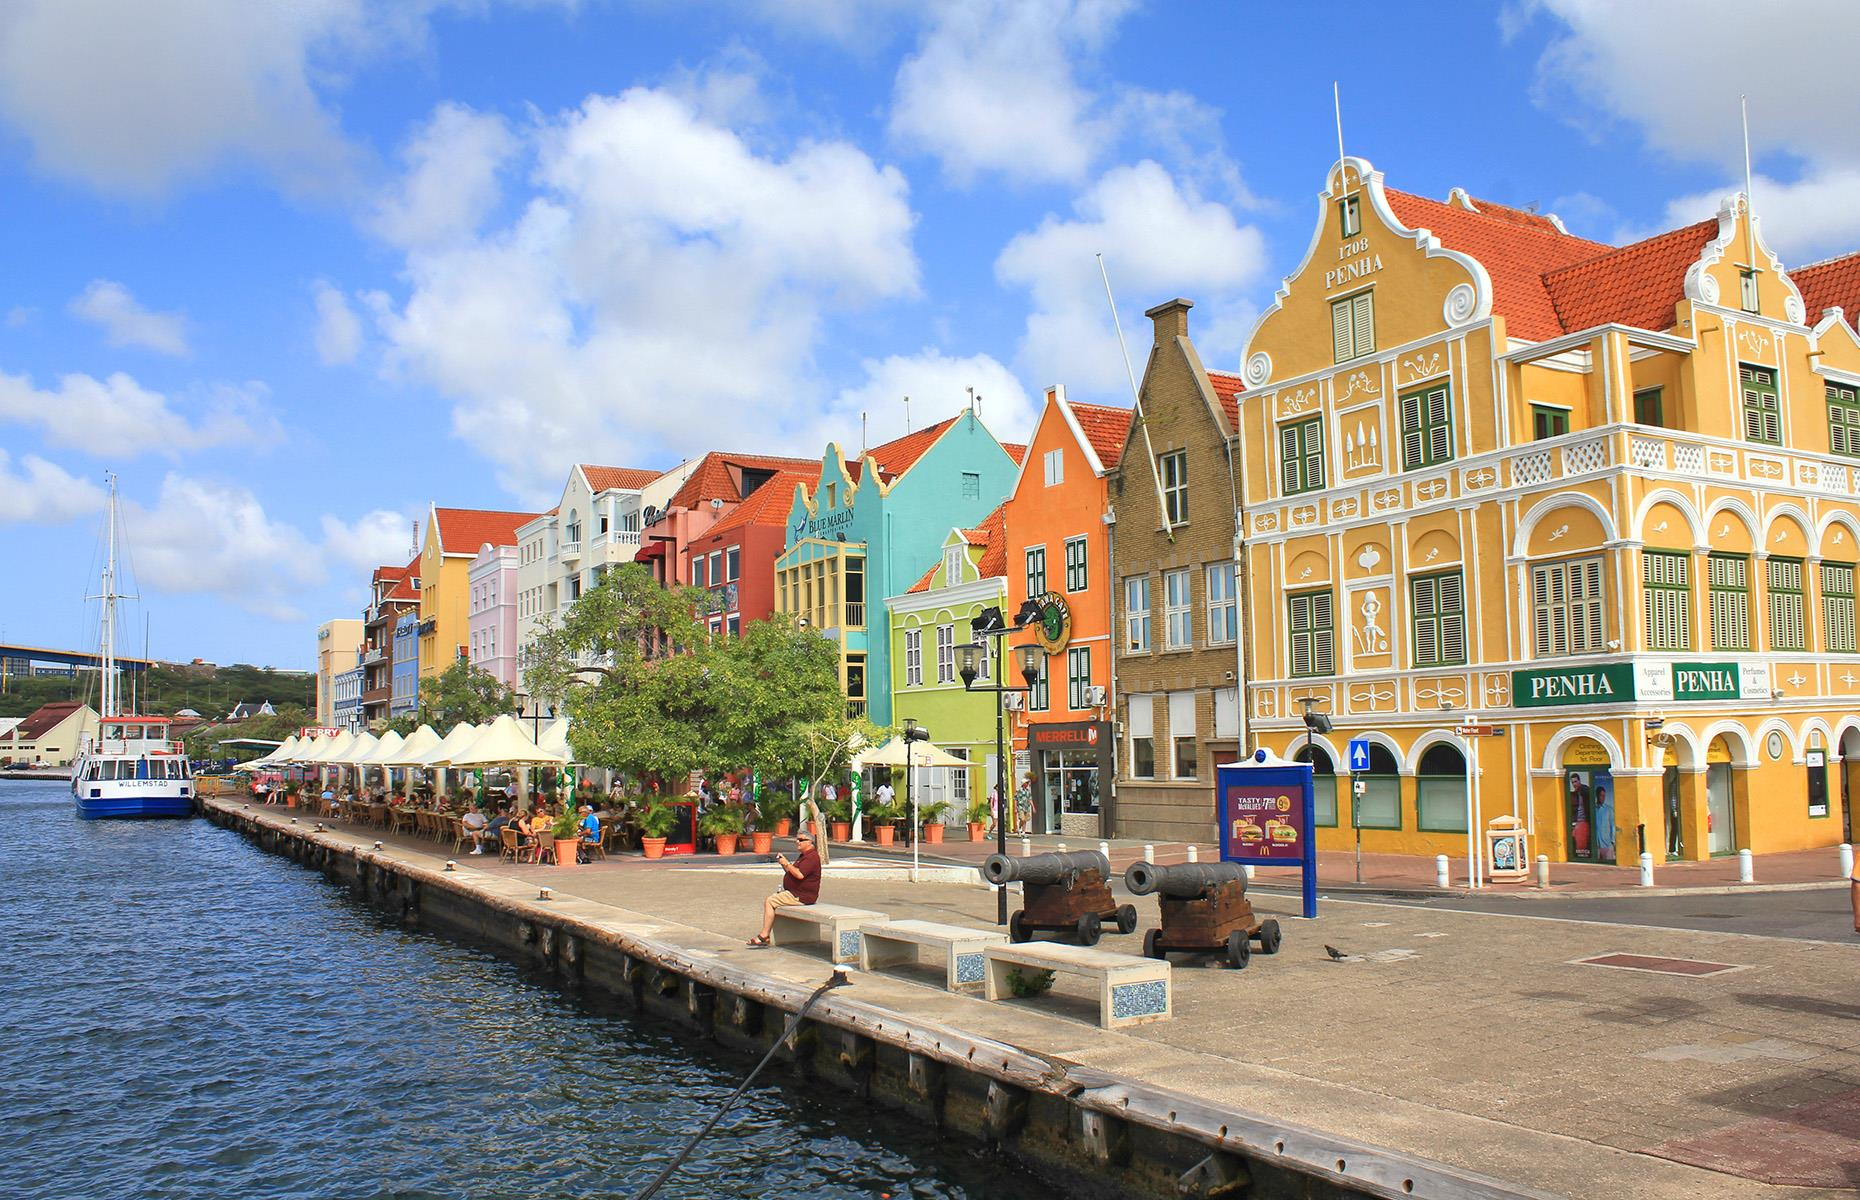 Slide 19 of 51: The history of Willemstad's colored houses sounds like an urban legend, but the buildings in this UNESCO-protected crowd-free Caribbean town were initially painted in an attempt to cure a headache. Back when the Dutch ruled Curaçao, the governor was convinced his migraines were caused by the tropical sun's rays reflecting off the whitewash buildings. All citizens were commanded to paint their homes anything but blinding white, resulting in this rainbow paradise. Take a look at the world's most colorful destinations.